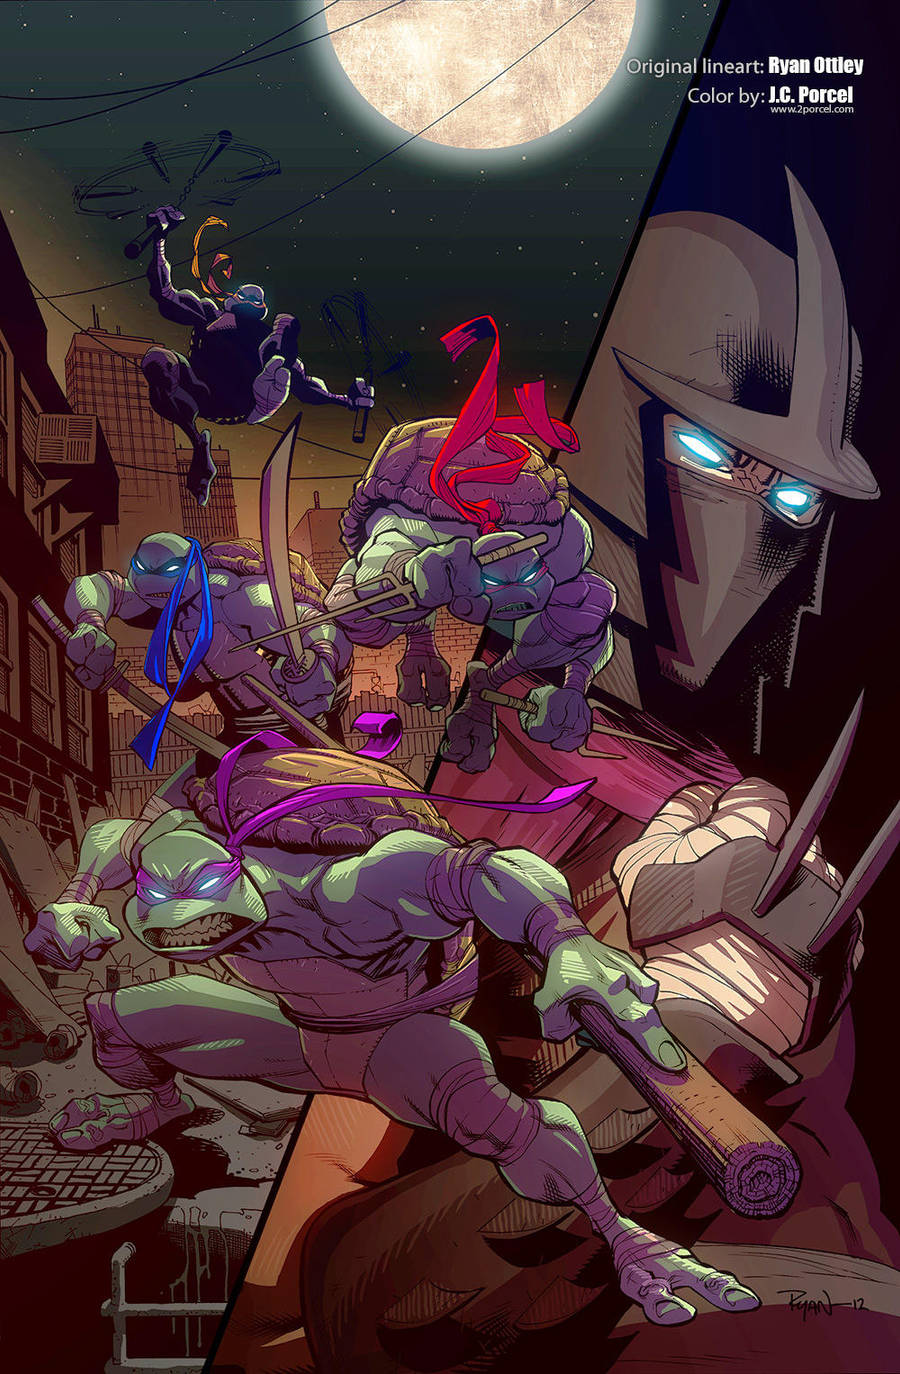 TMNT by Ryan Ottley, painted by me by evilself